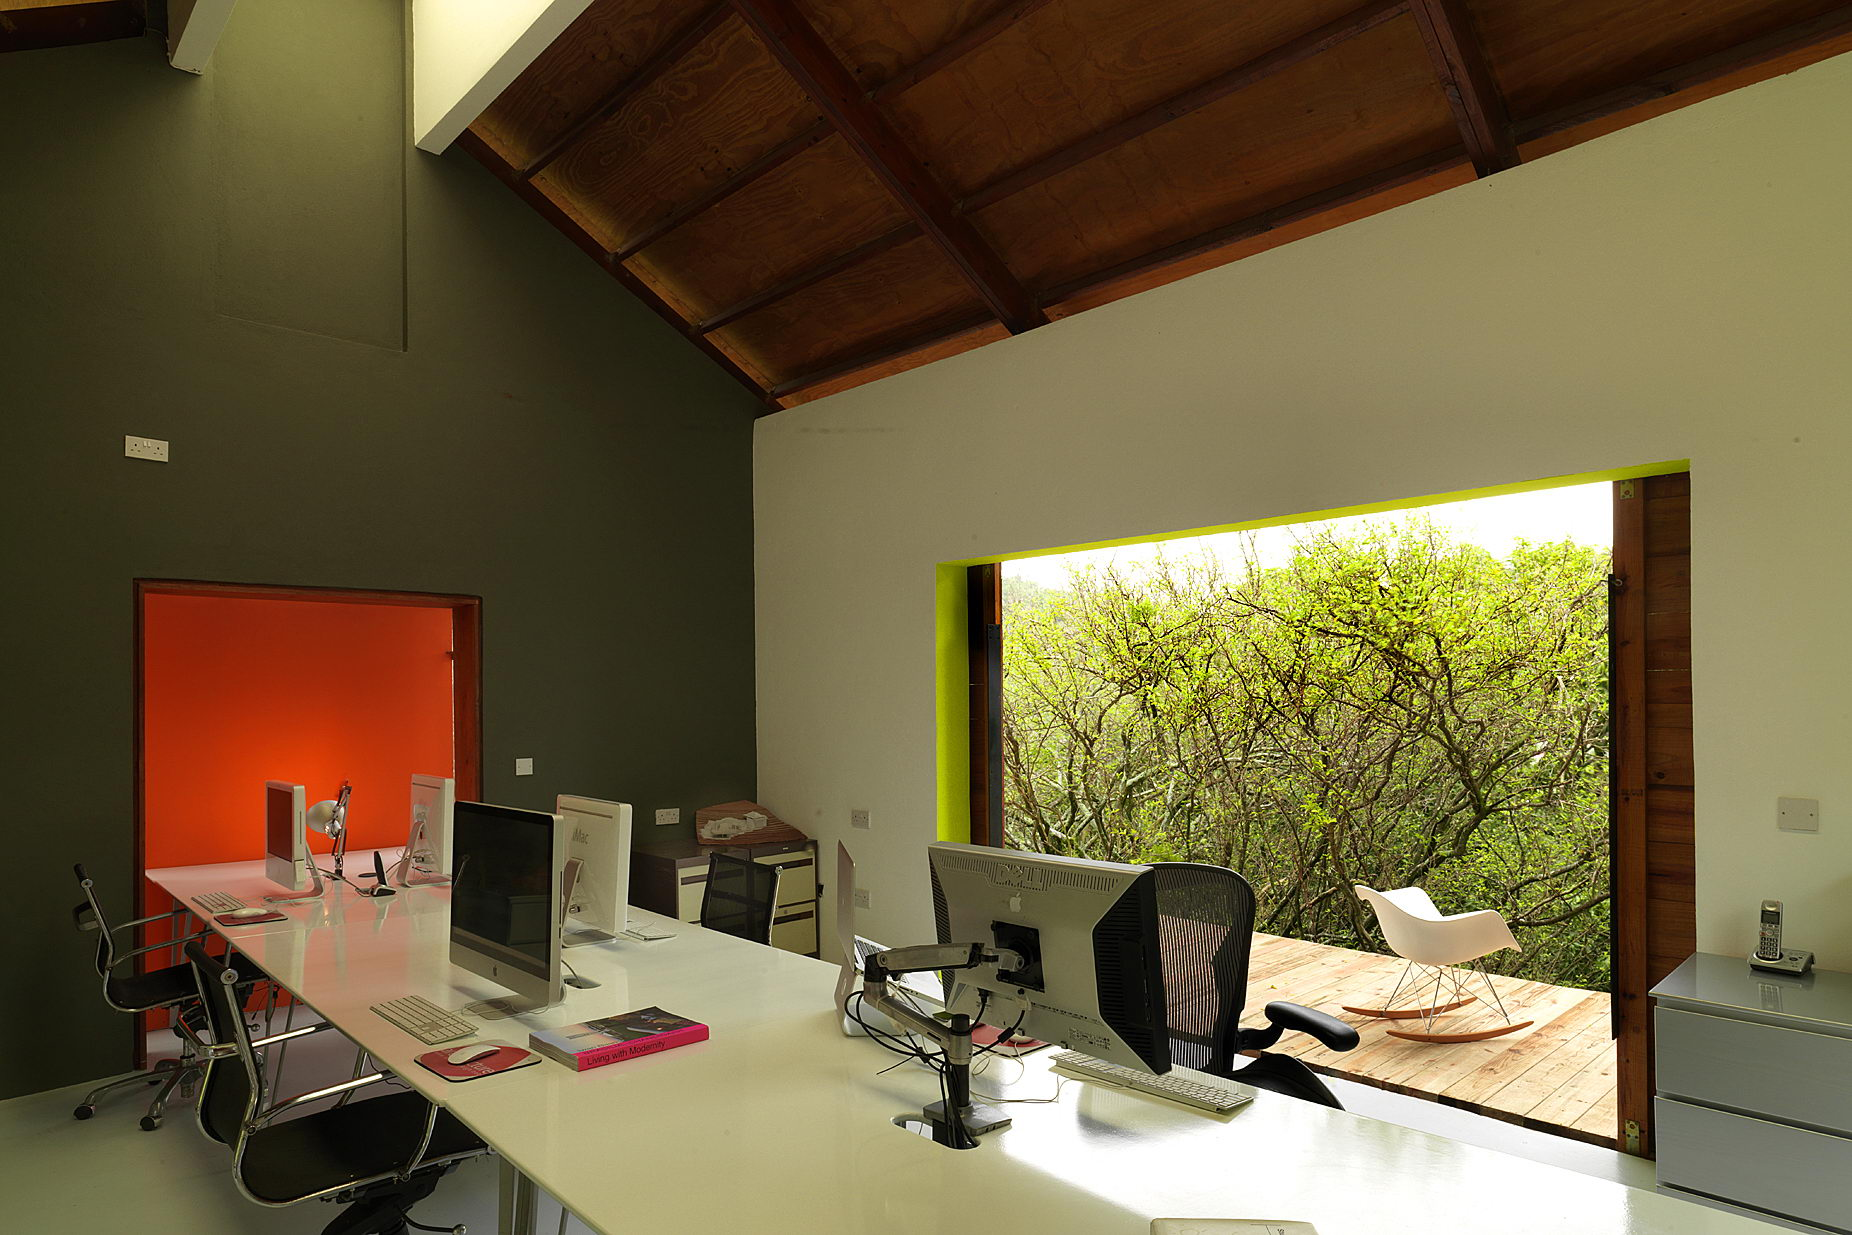 Modern Architecture Office unique modern architecture office interior intended decorating ideas